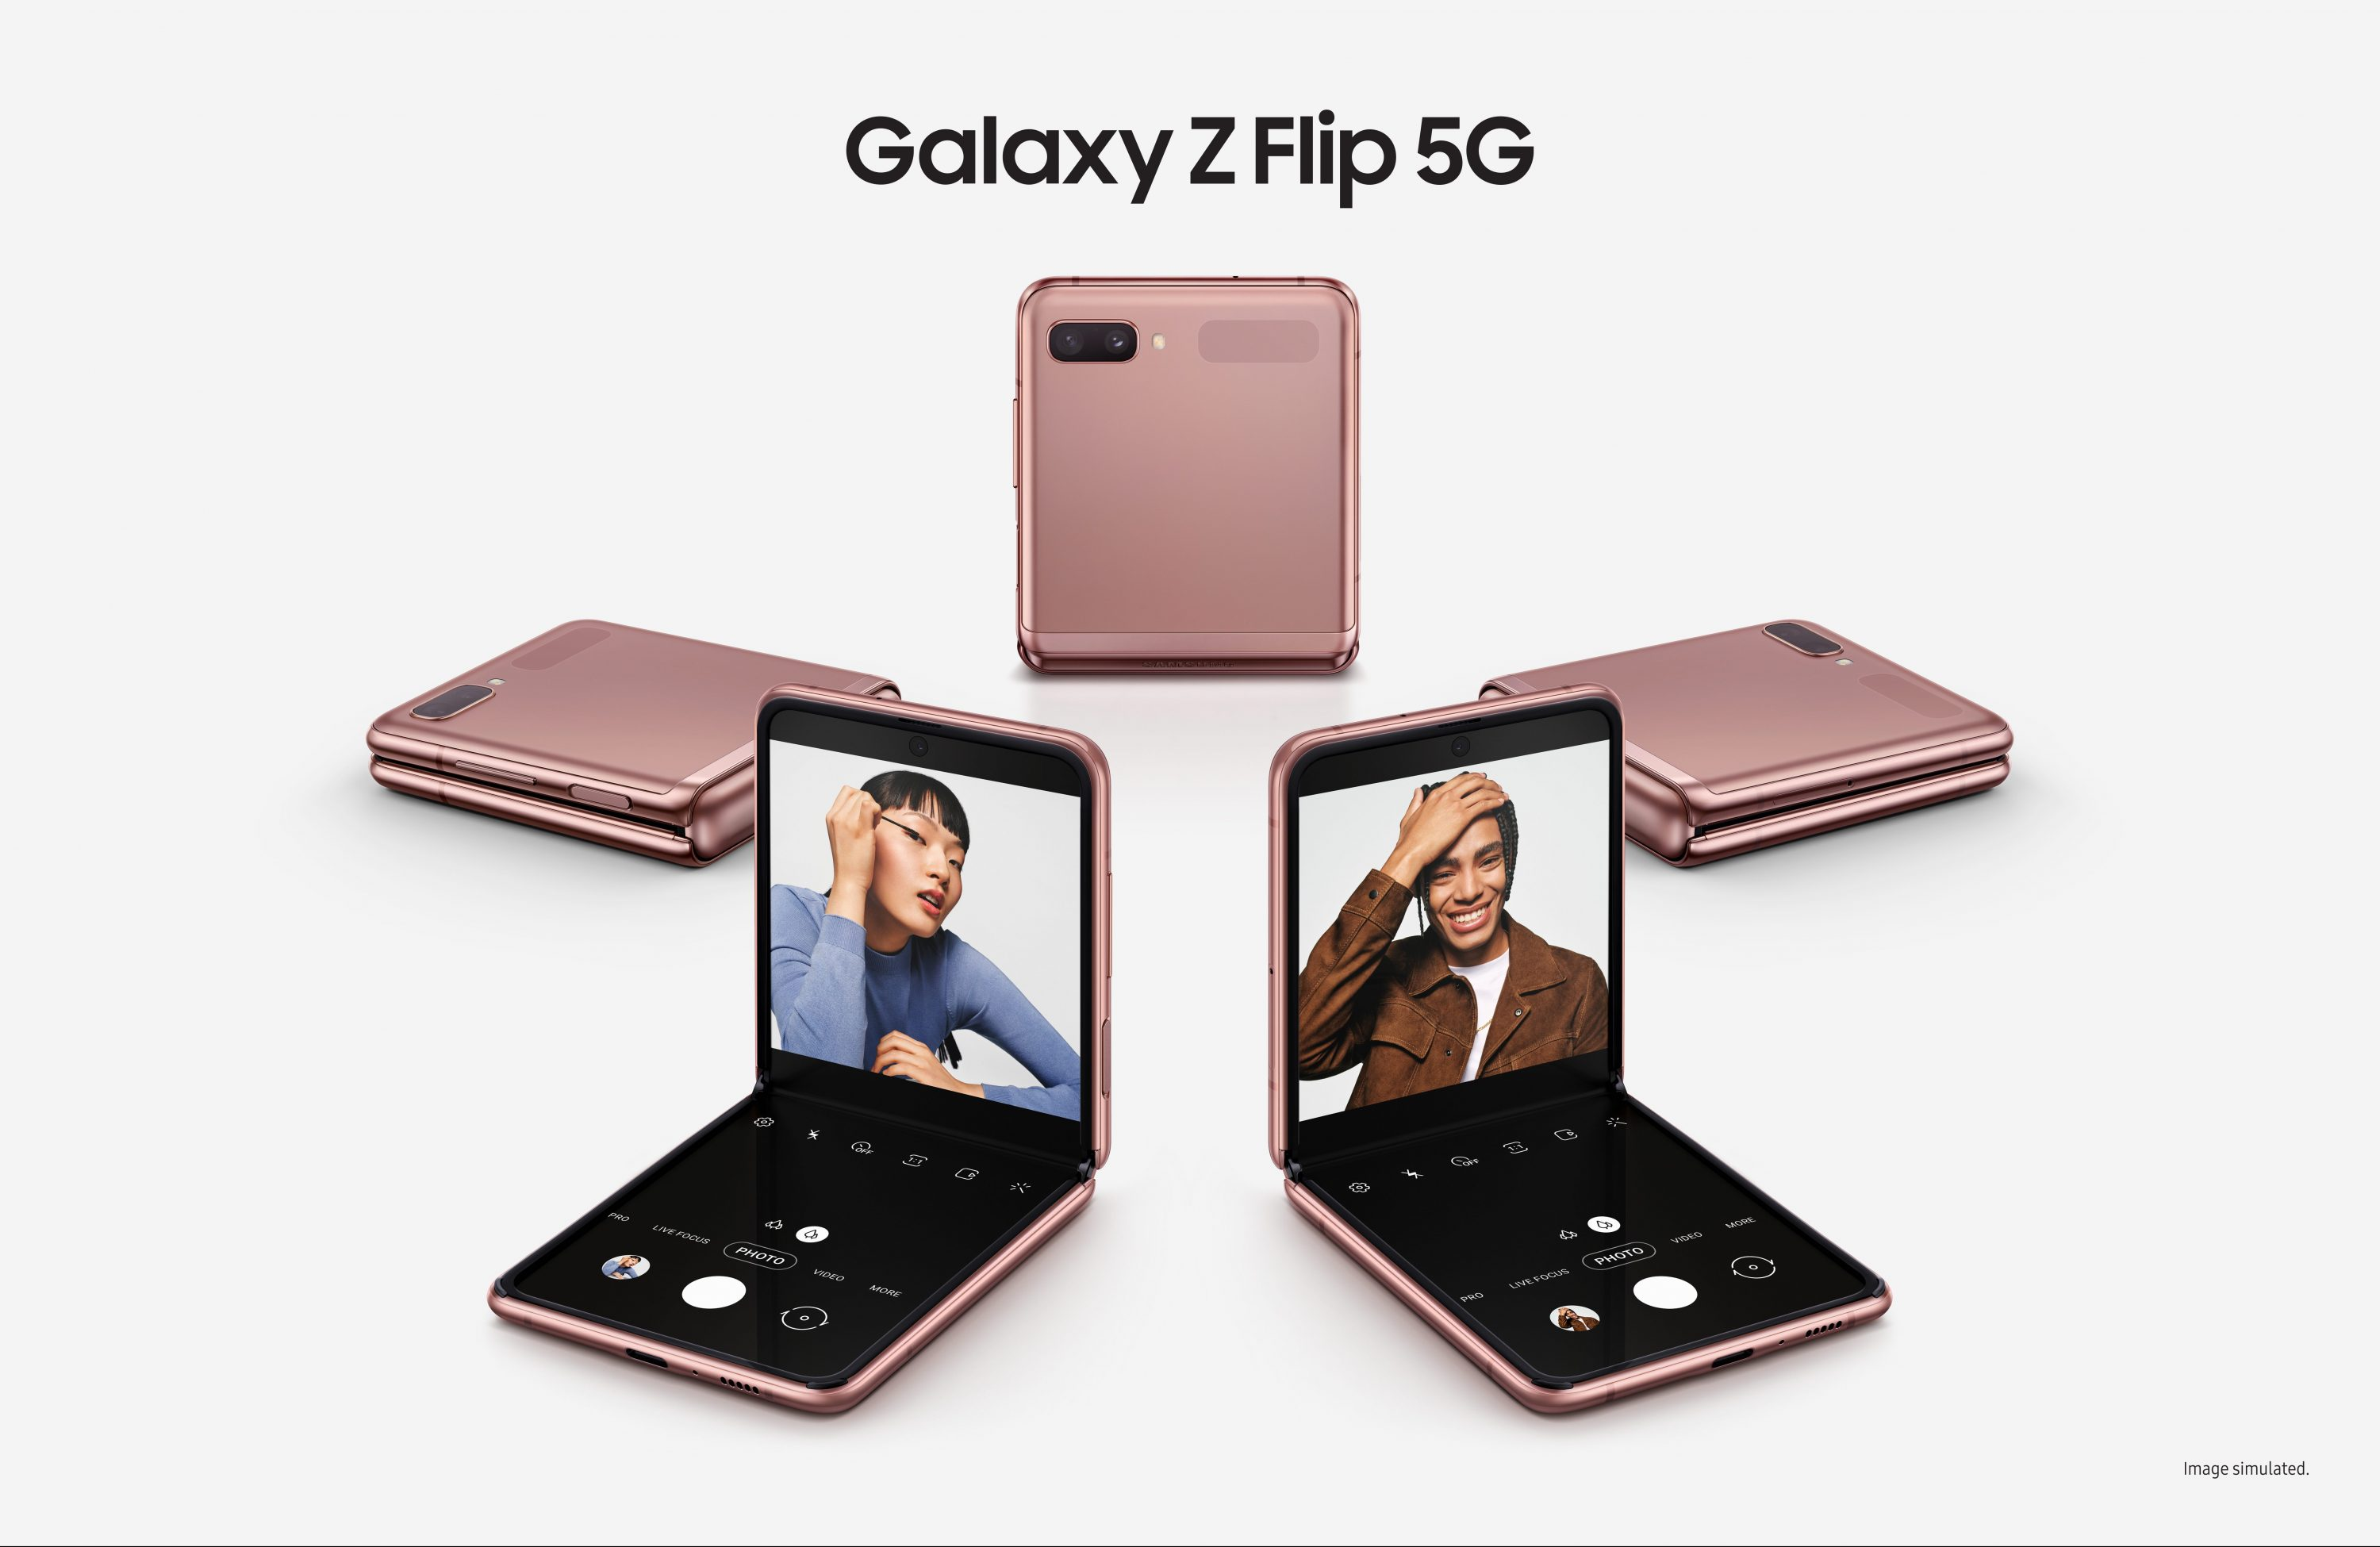 Introducing Galaxy Z Flip 5G